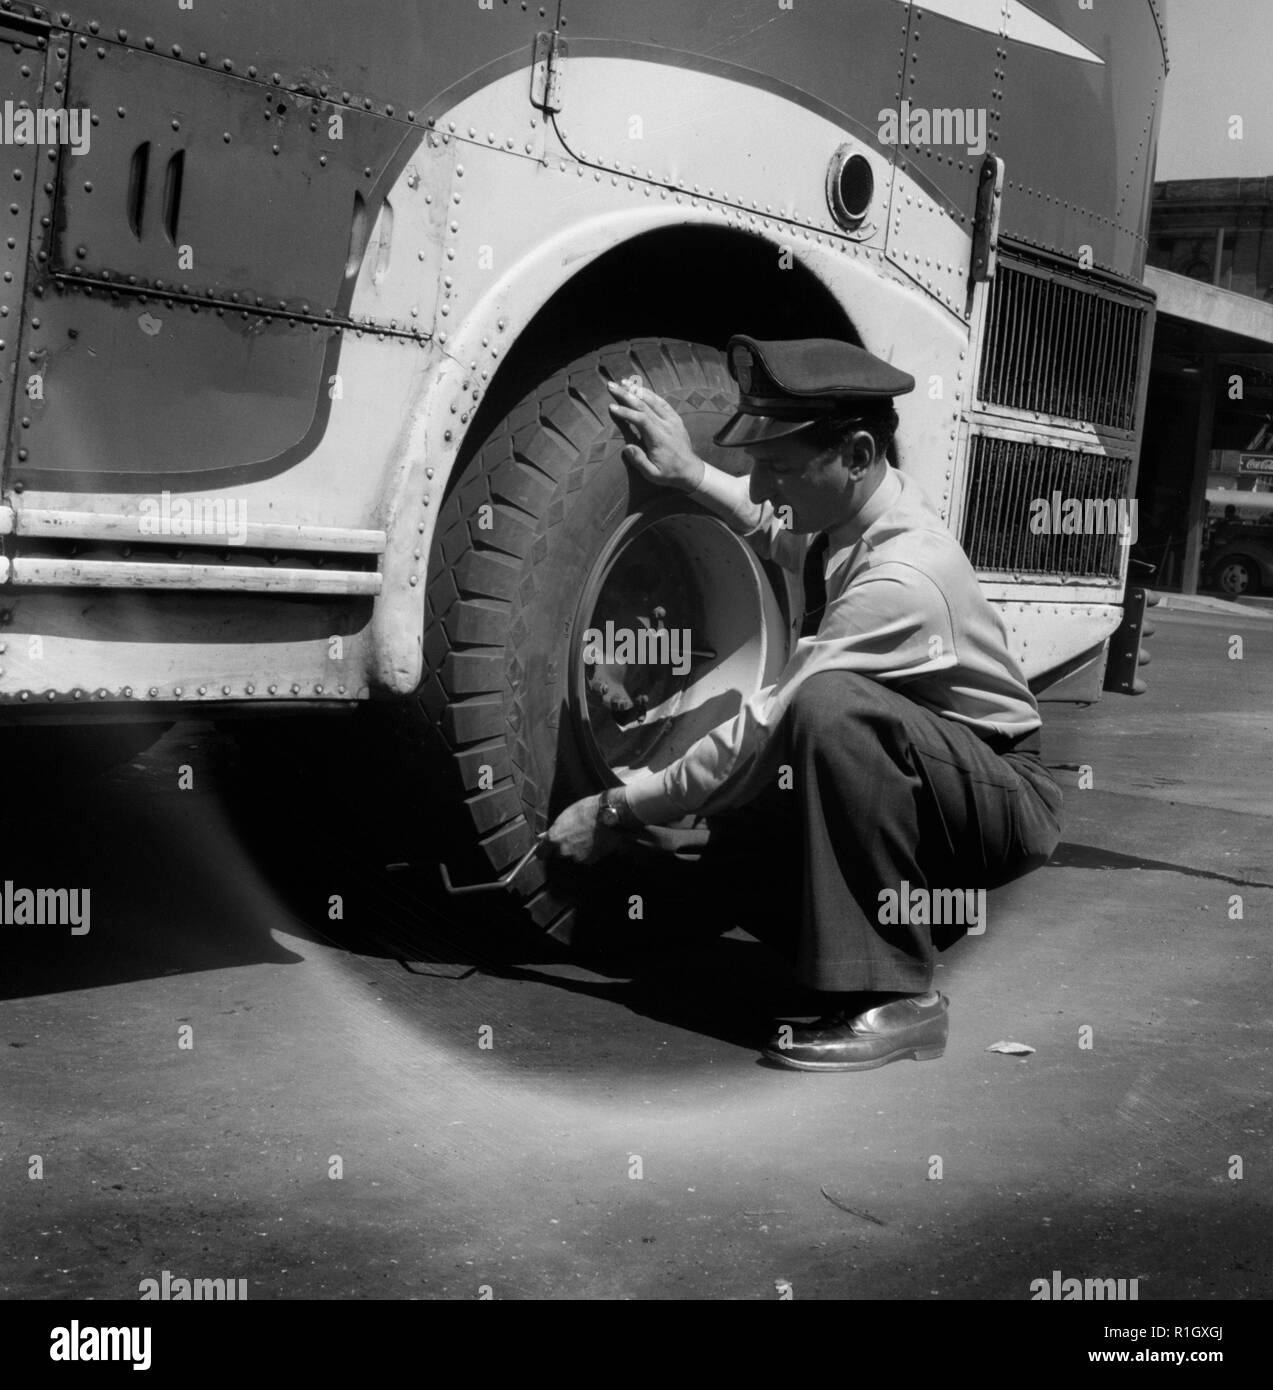 Columbus, Ohio. Randy Pribble, a bus driver for the Pennsylvania Greyhound Lines, Incorporated, checking tires on a bus by thumping them before taking it out on a run. Since there are two tires on the back, the sound is the best way of telling if one of them is flat. September 1943 Stock Photo